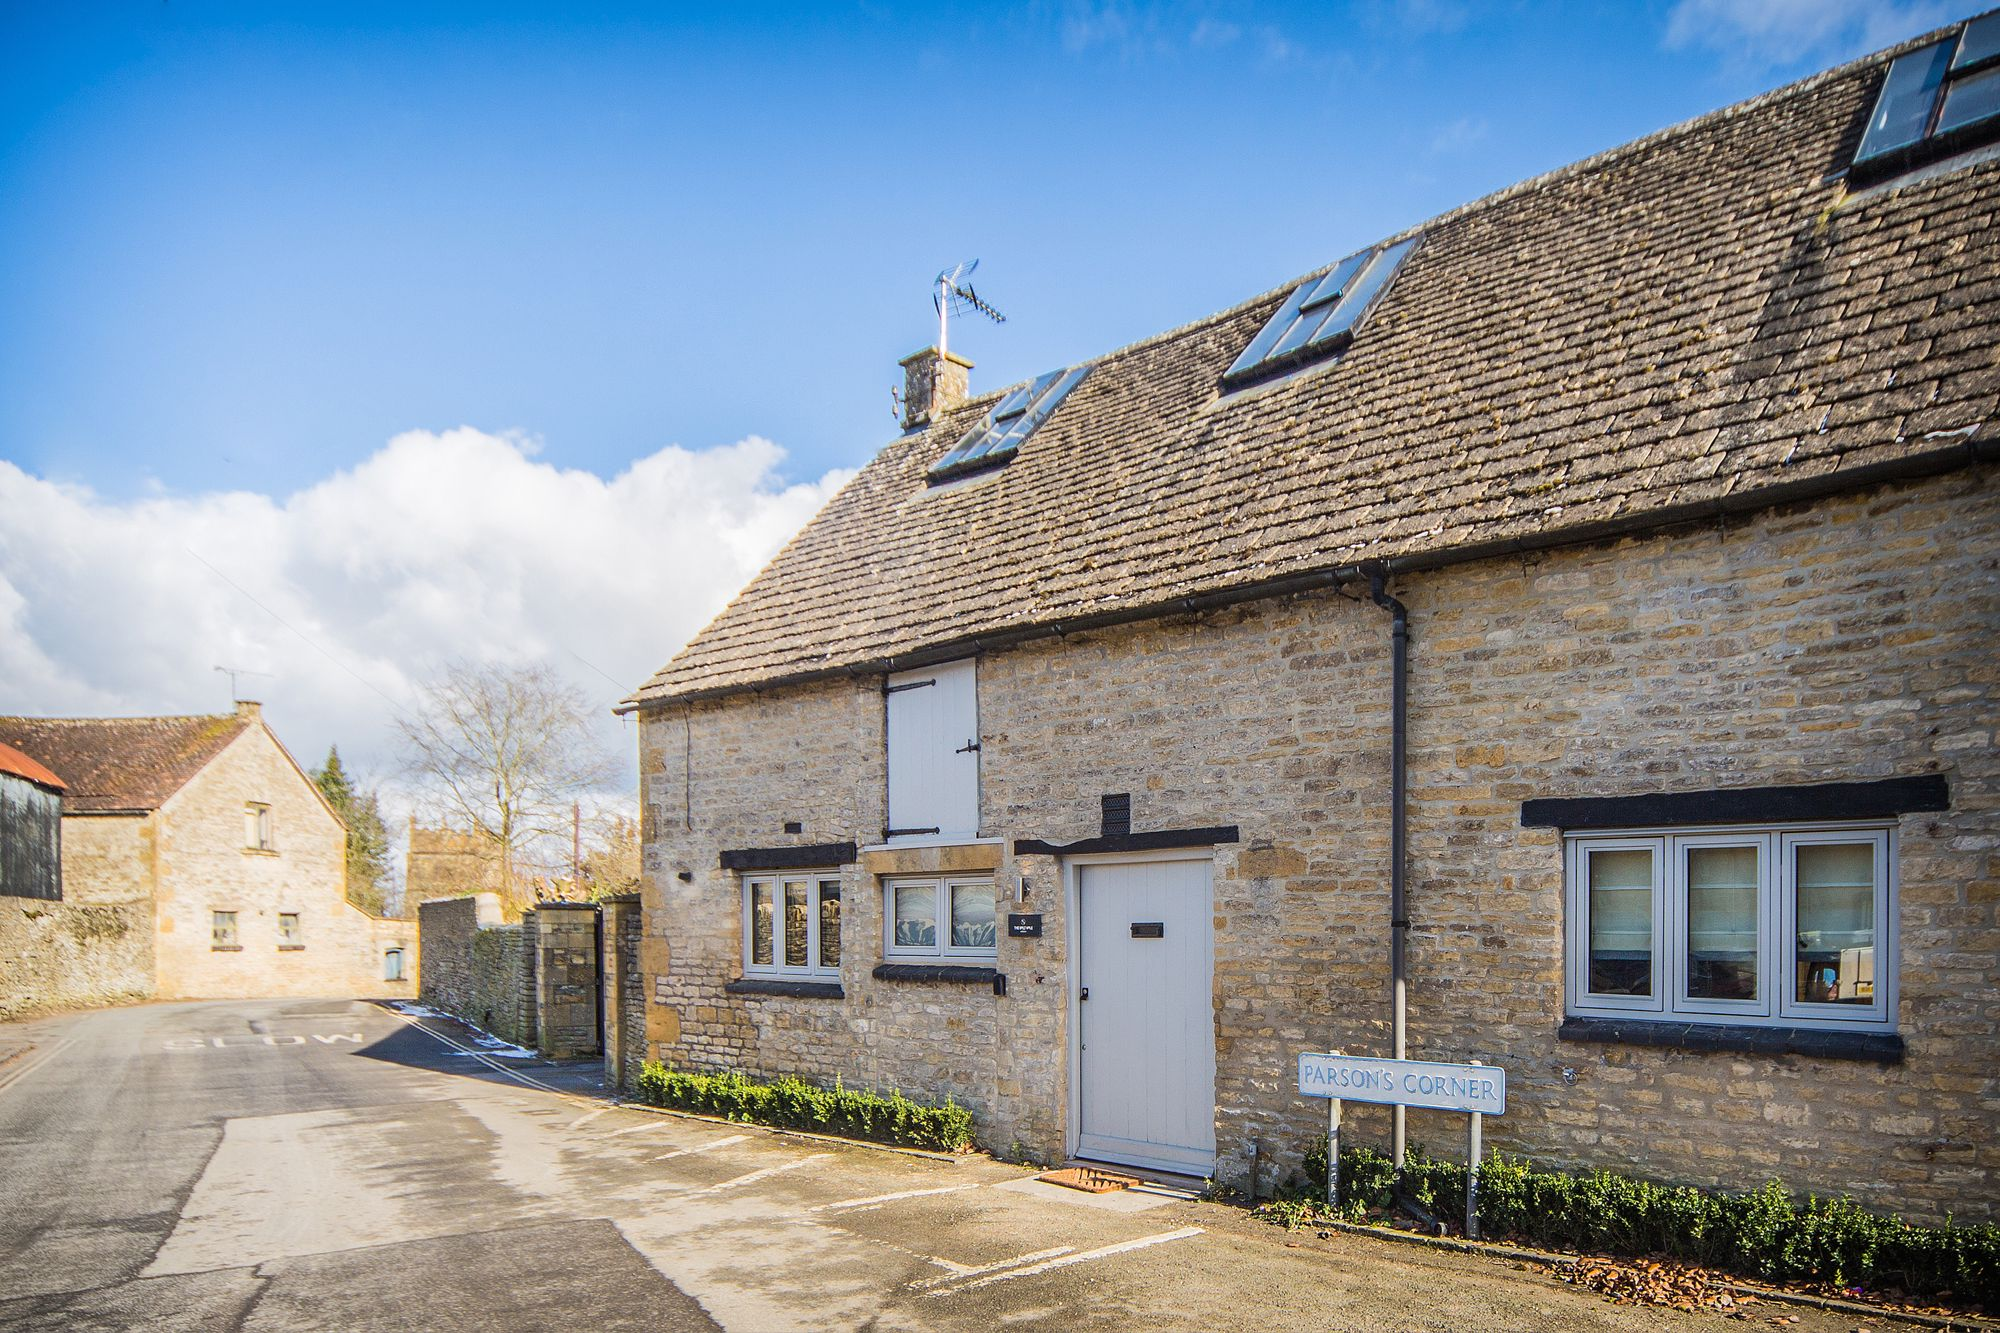 Places to Stay in Stow-on-the-Wold holidays at Cool Places